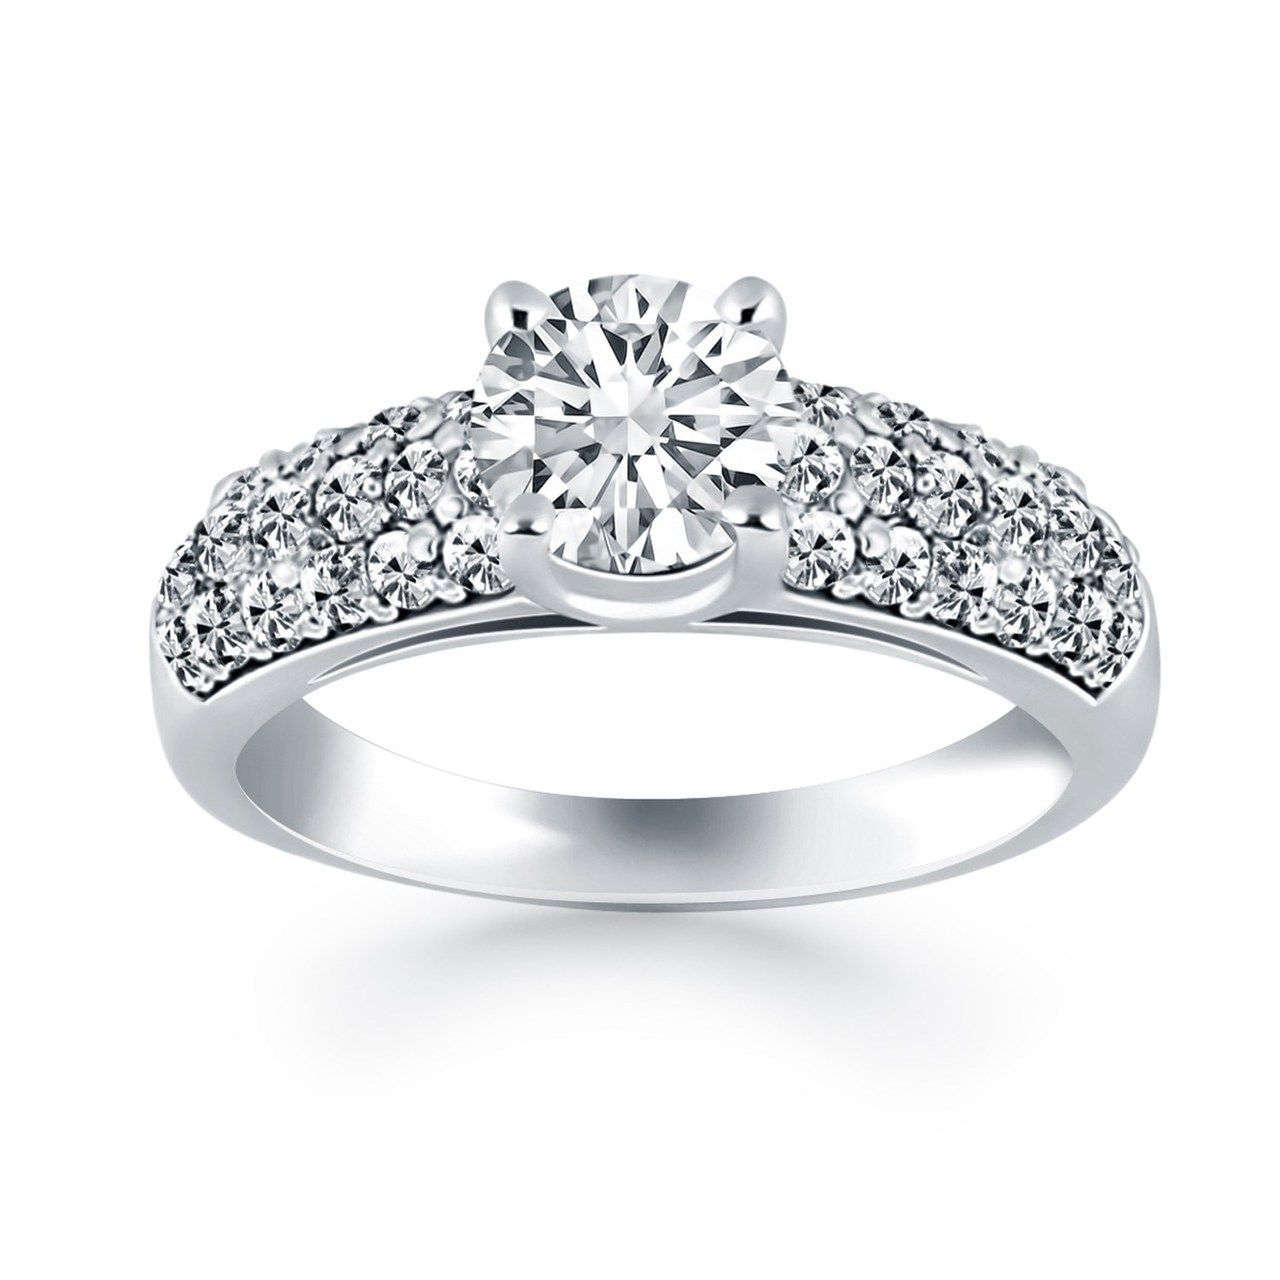 K white gold tapered pave diamond wide band engagement ring